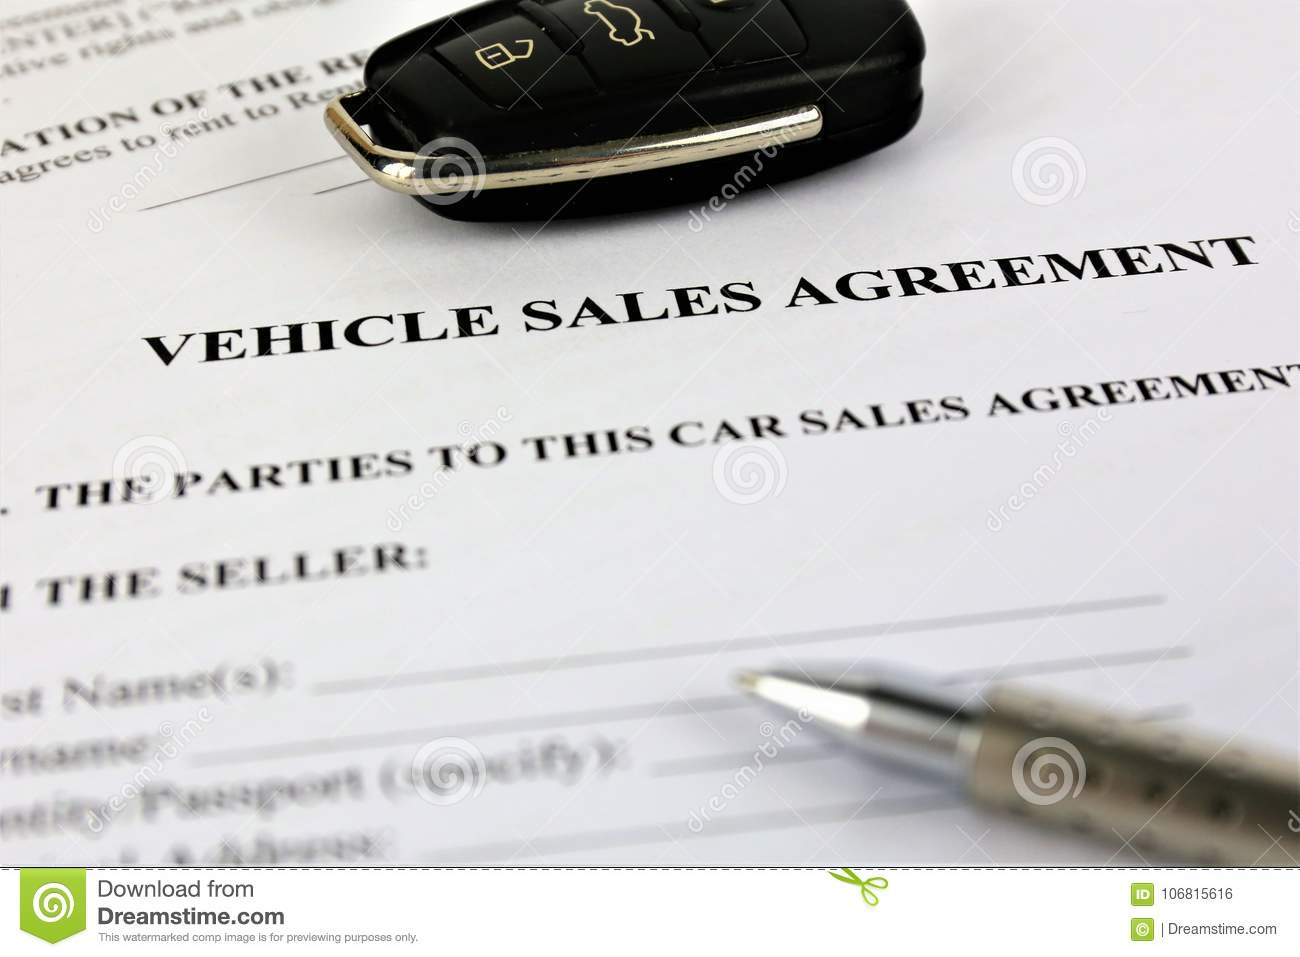 an concept image of a vehicle sales agreement stock photo image of